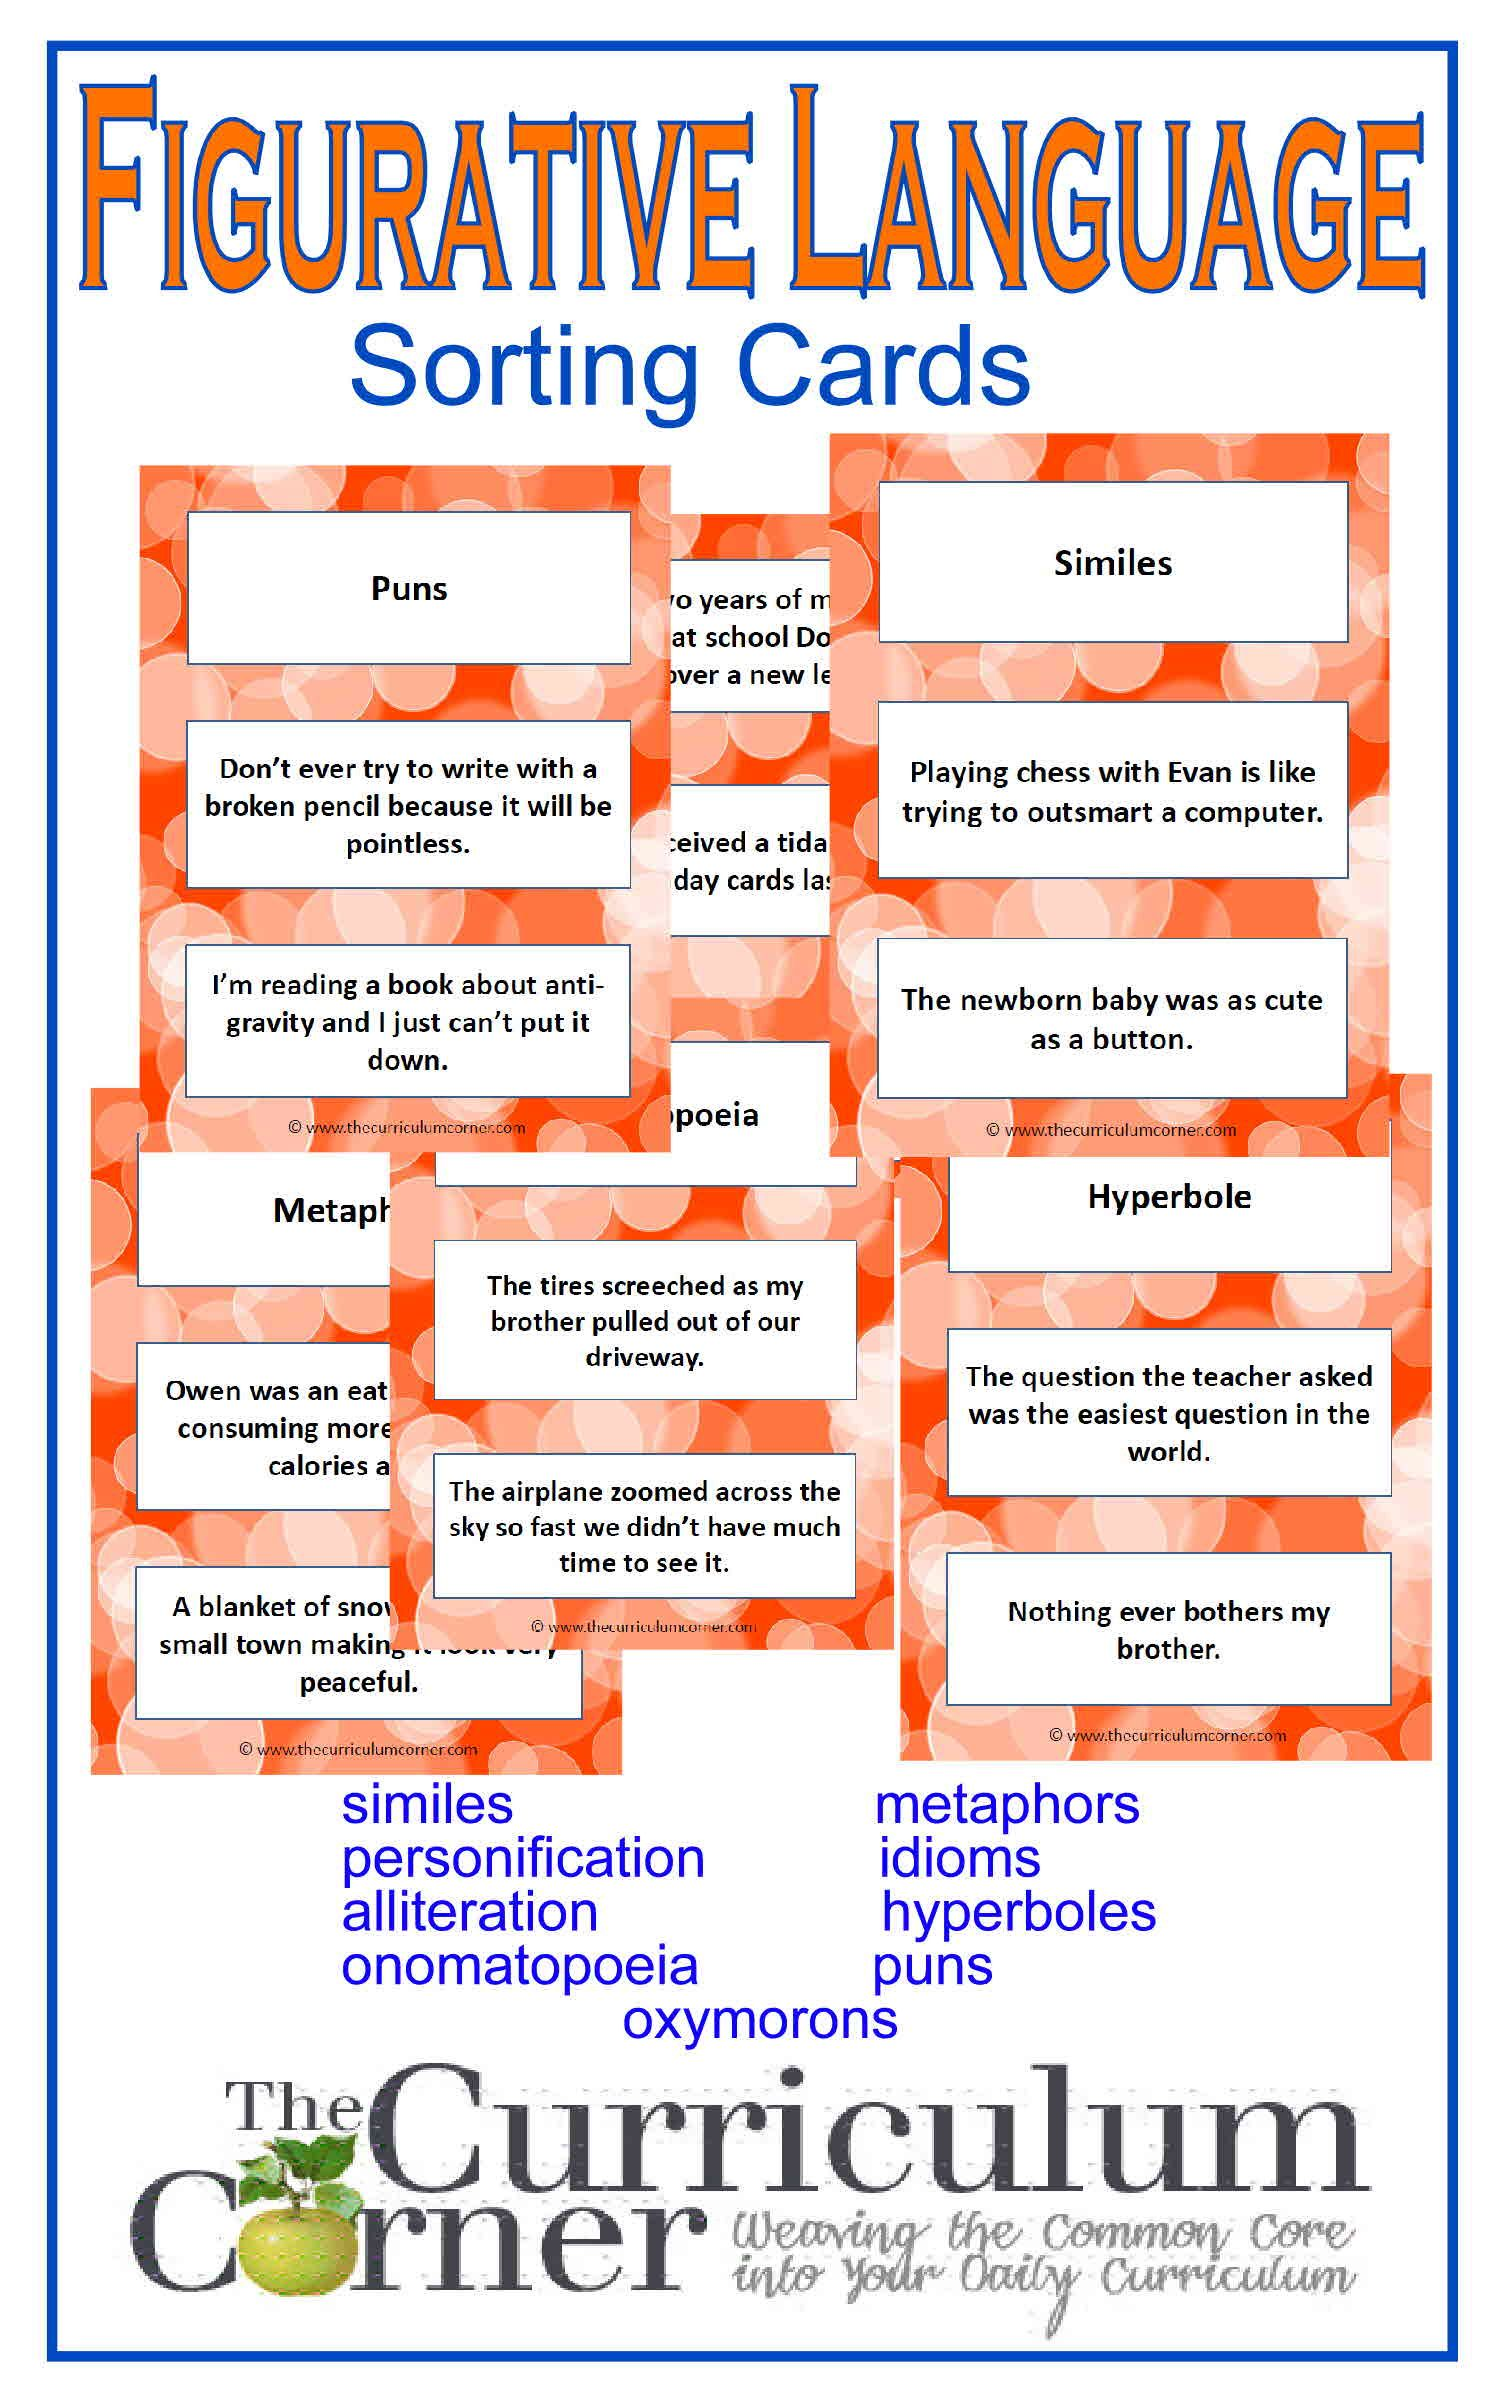 figurative language cards language the o jays and curriculum figurative language sorting cards from the curriculum corner similes metaphors personification